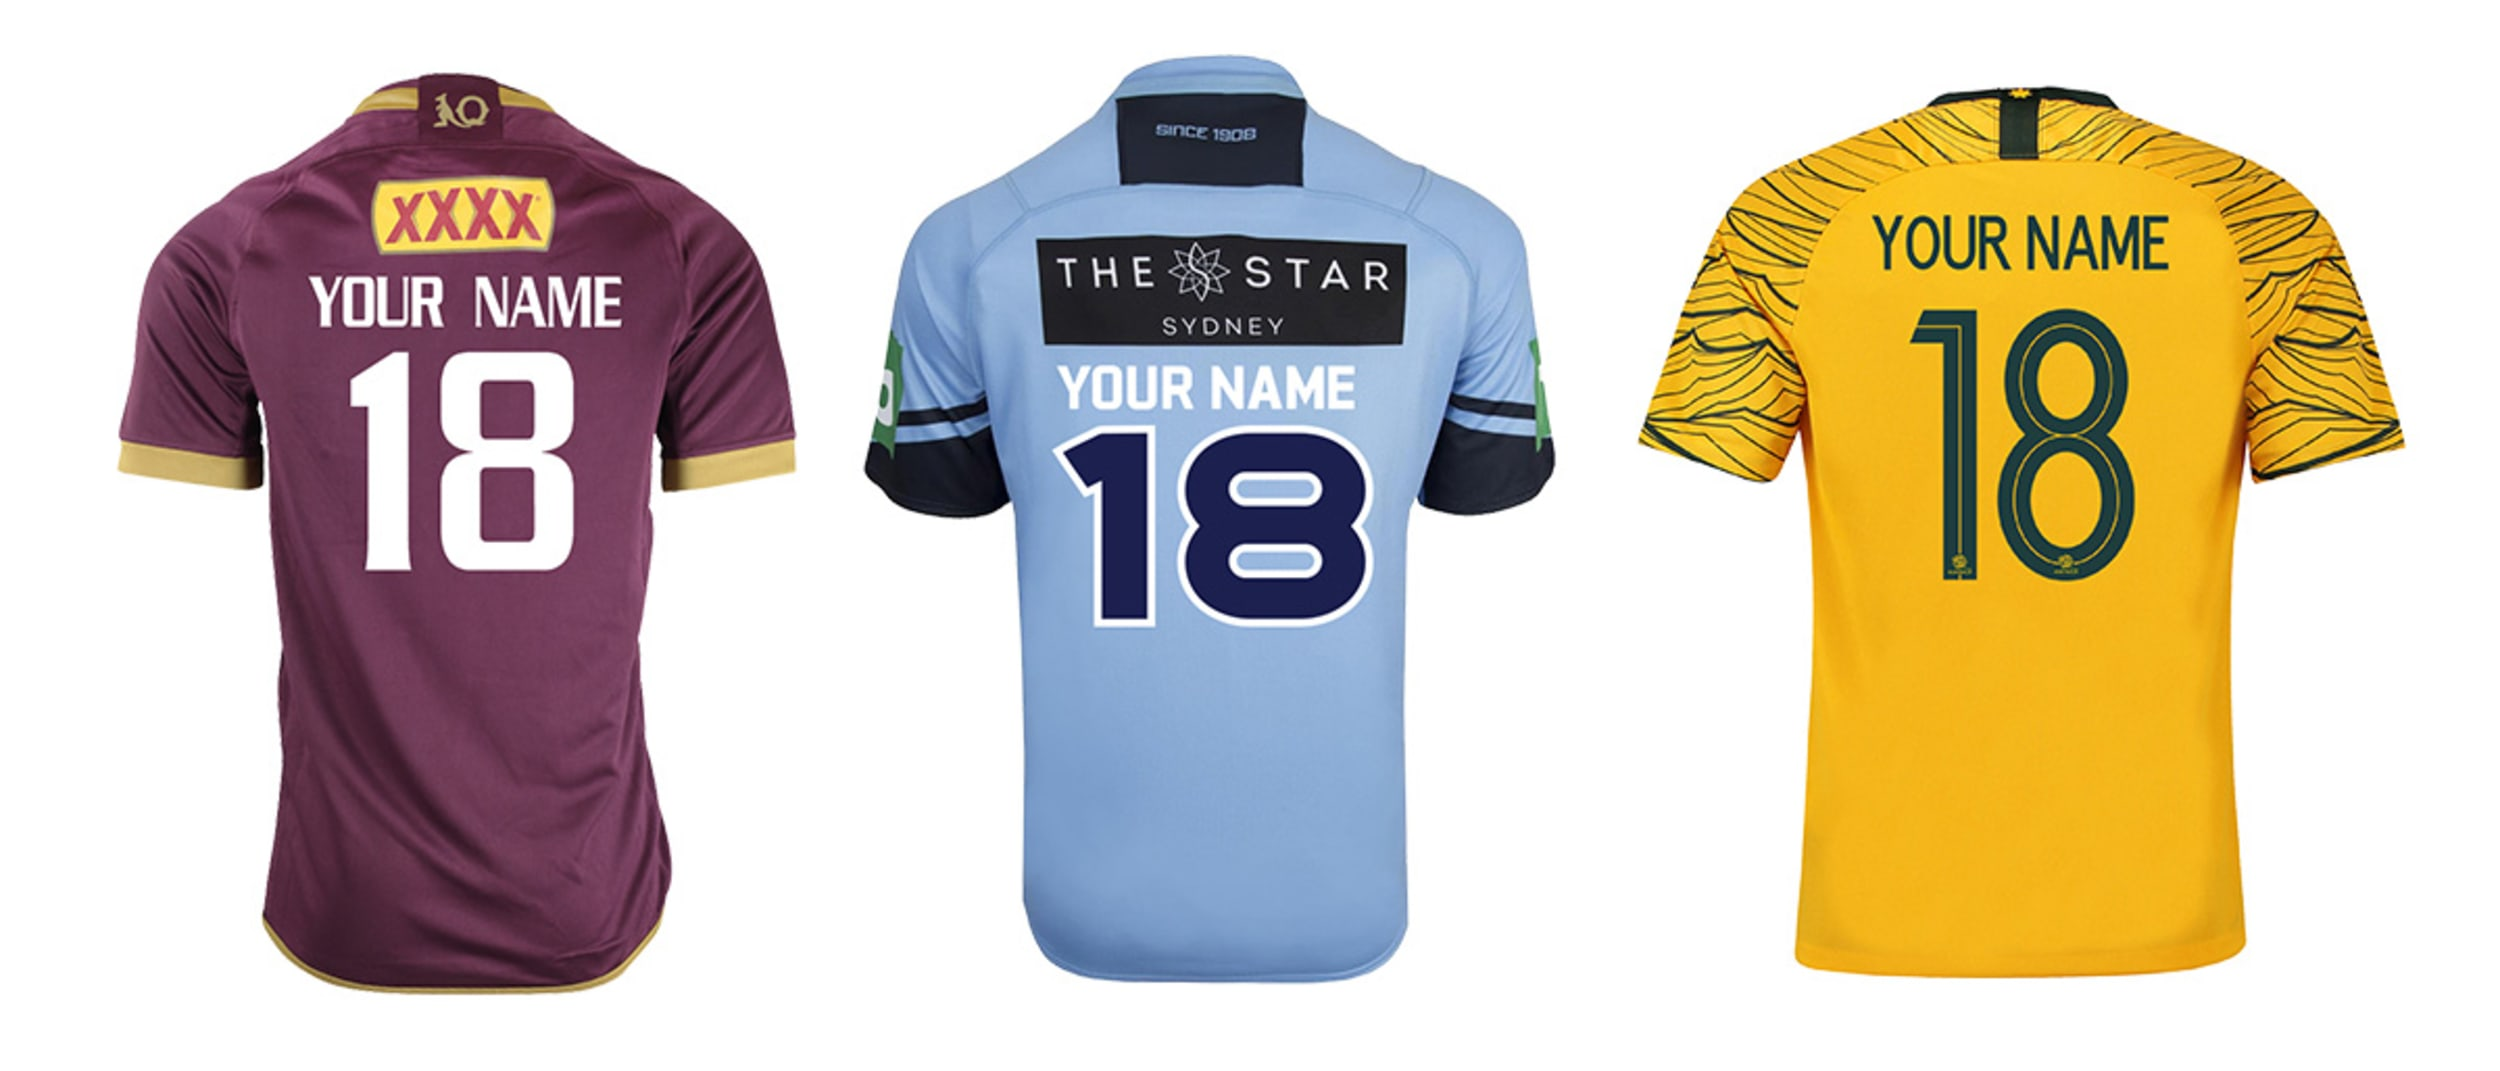 Rebel: Personalise your favourite jersey